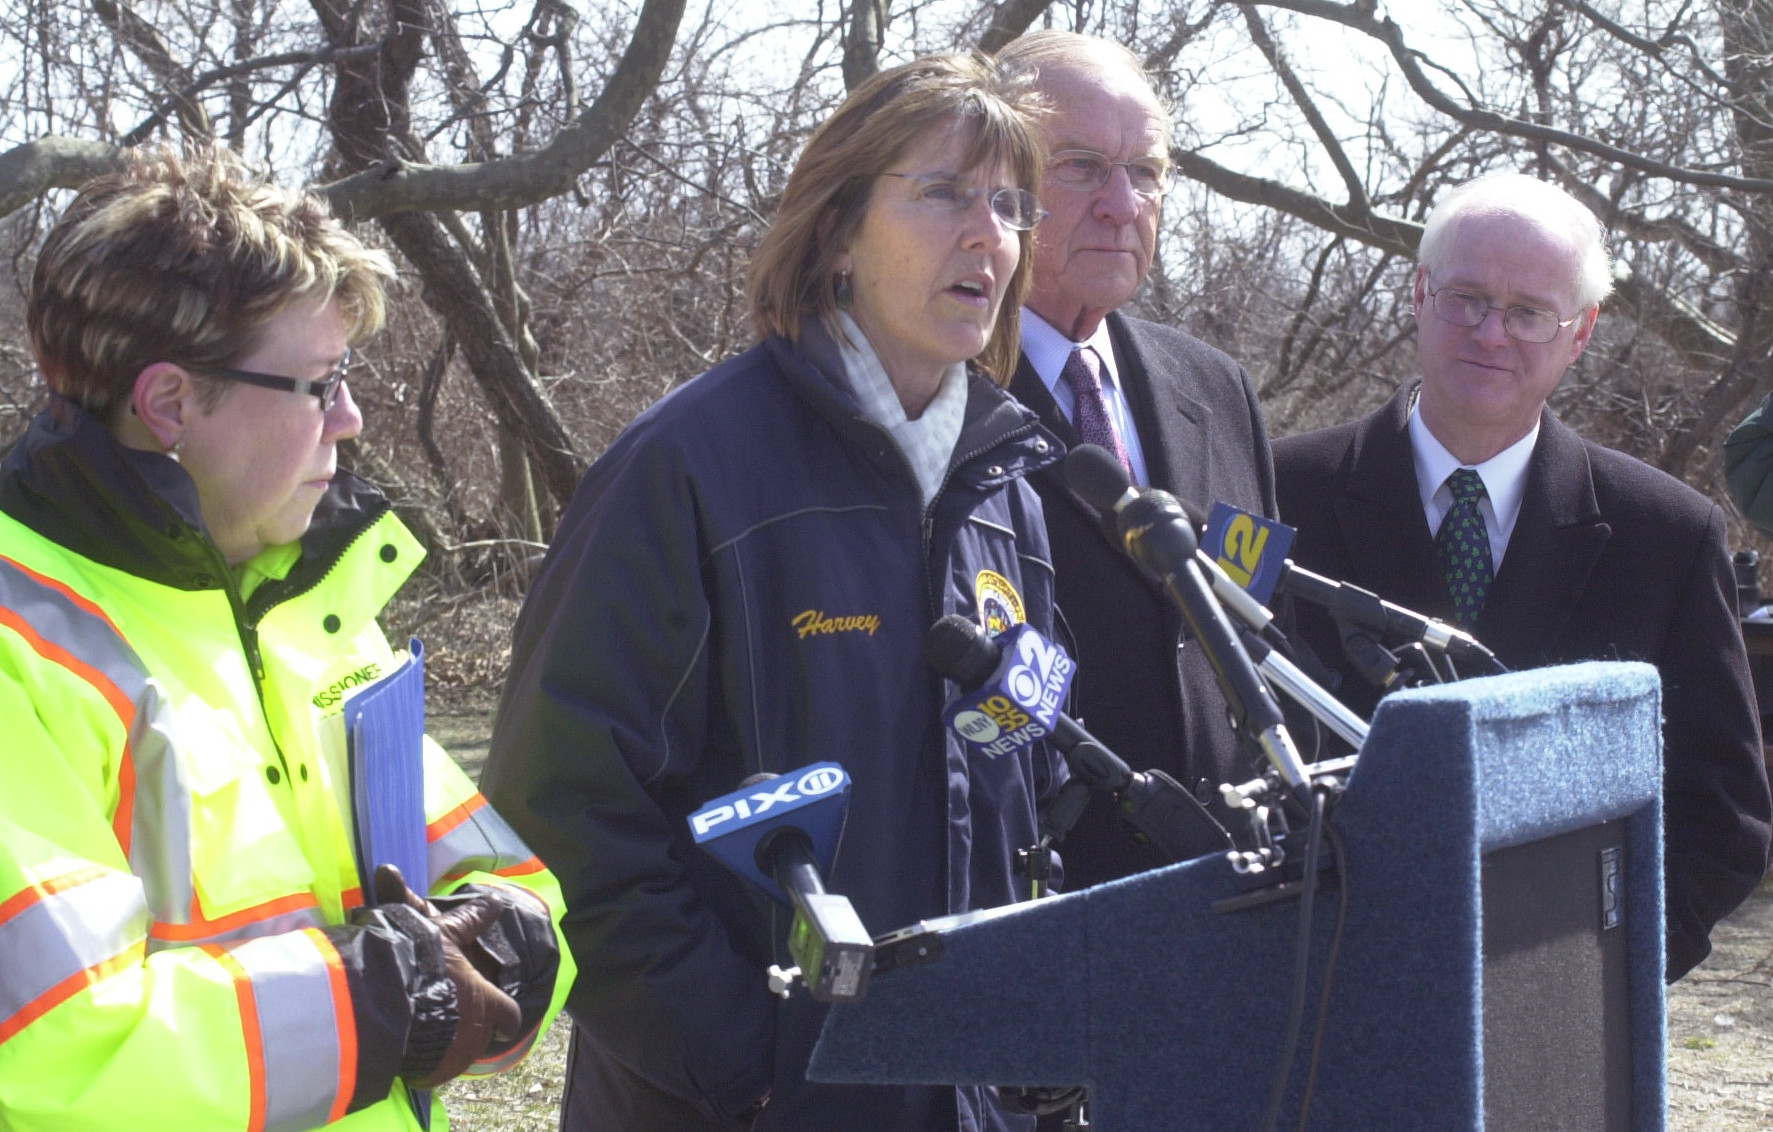 State Parks Commissioner Rose Harvey, at lectern, reviewed progress that workers have made in repairing damage to Jones Beach Island from Hurricane Sandy. She was joined by, from left, State Transportation Commissioner Joan McDonald, Assemblyman David McDonough of North Merrick and Chip Gorman, acting Long Island regional director for the state Department of Parks, Recreation and Historic Preservation.